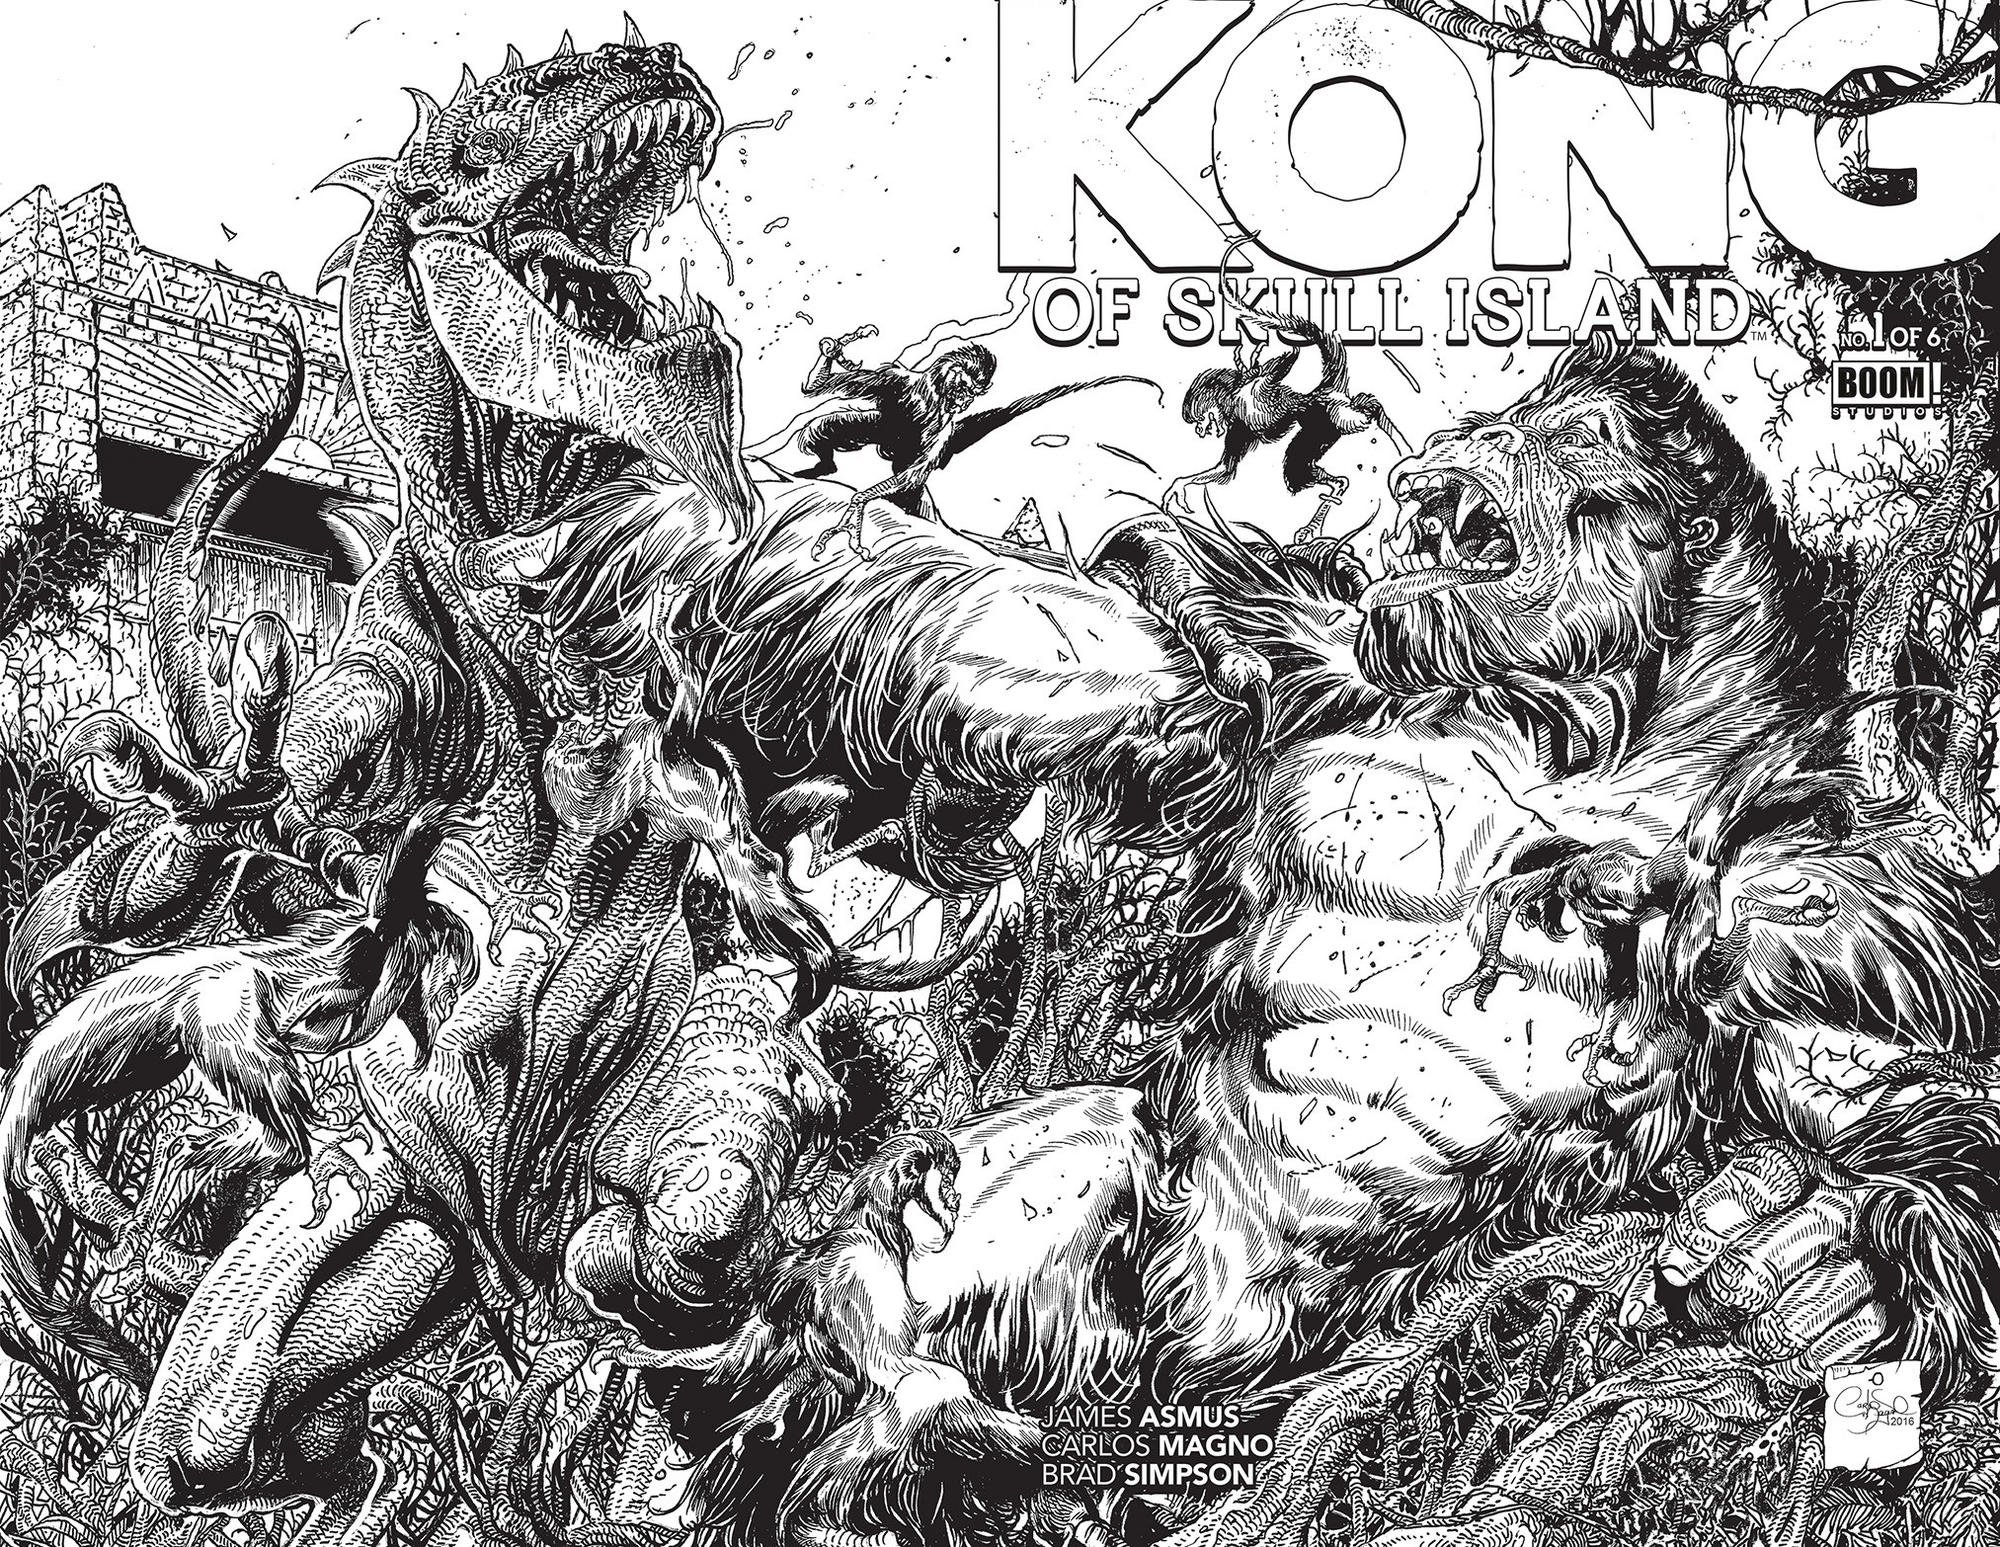 The coloring book variant cover for